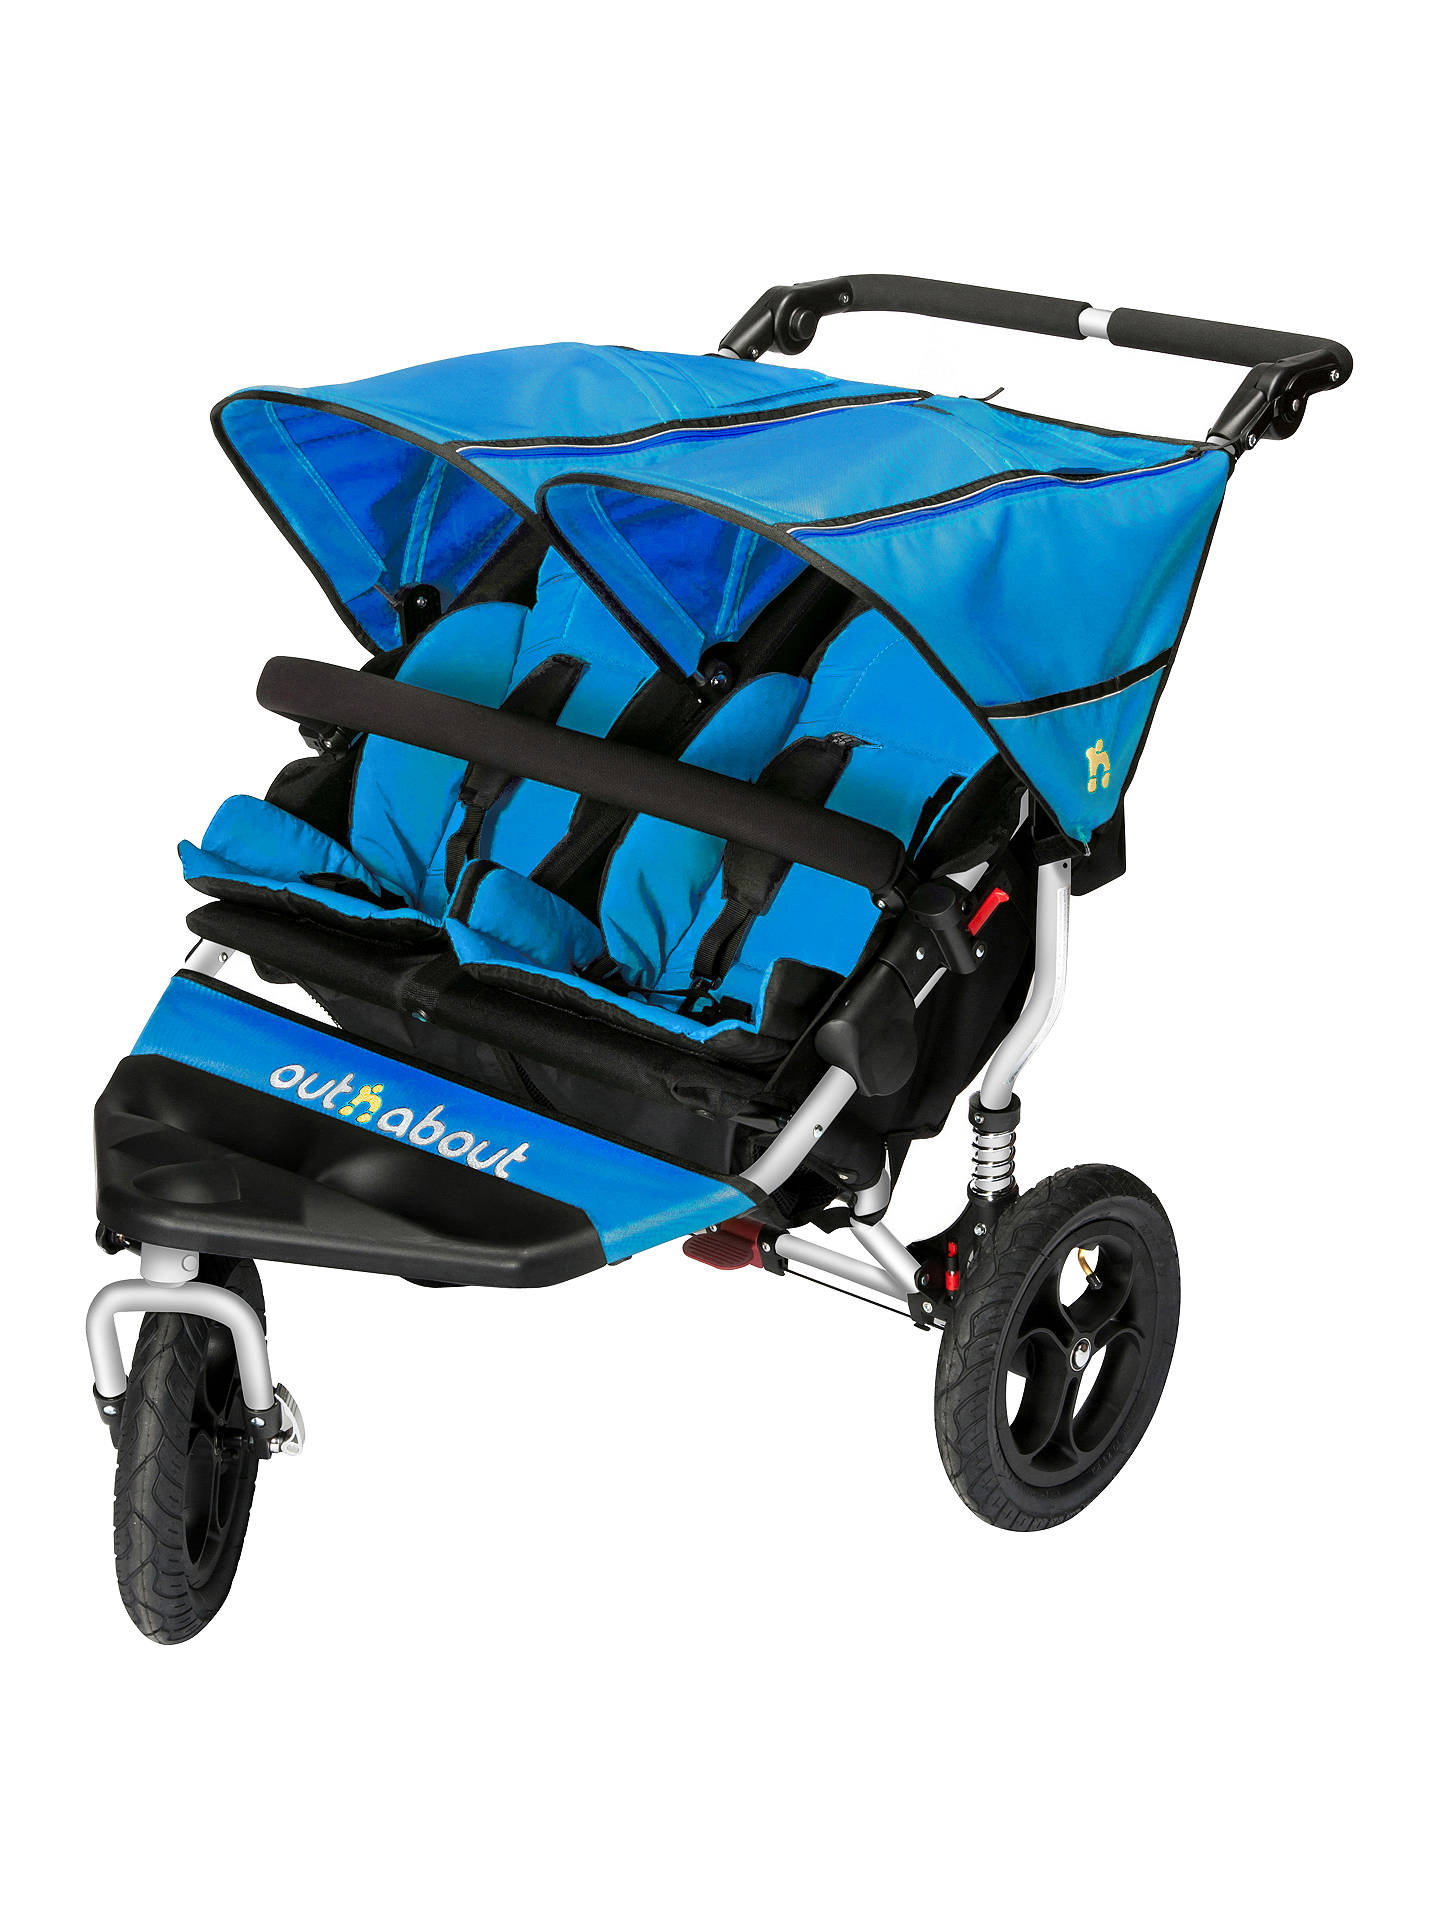 OUT N ABOUT DOUBLE NIPPER V4 – LAGOON BLUE – INCLUDES RAINCOVER & BASKET